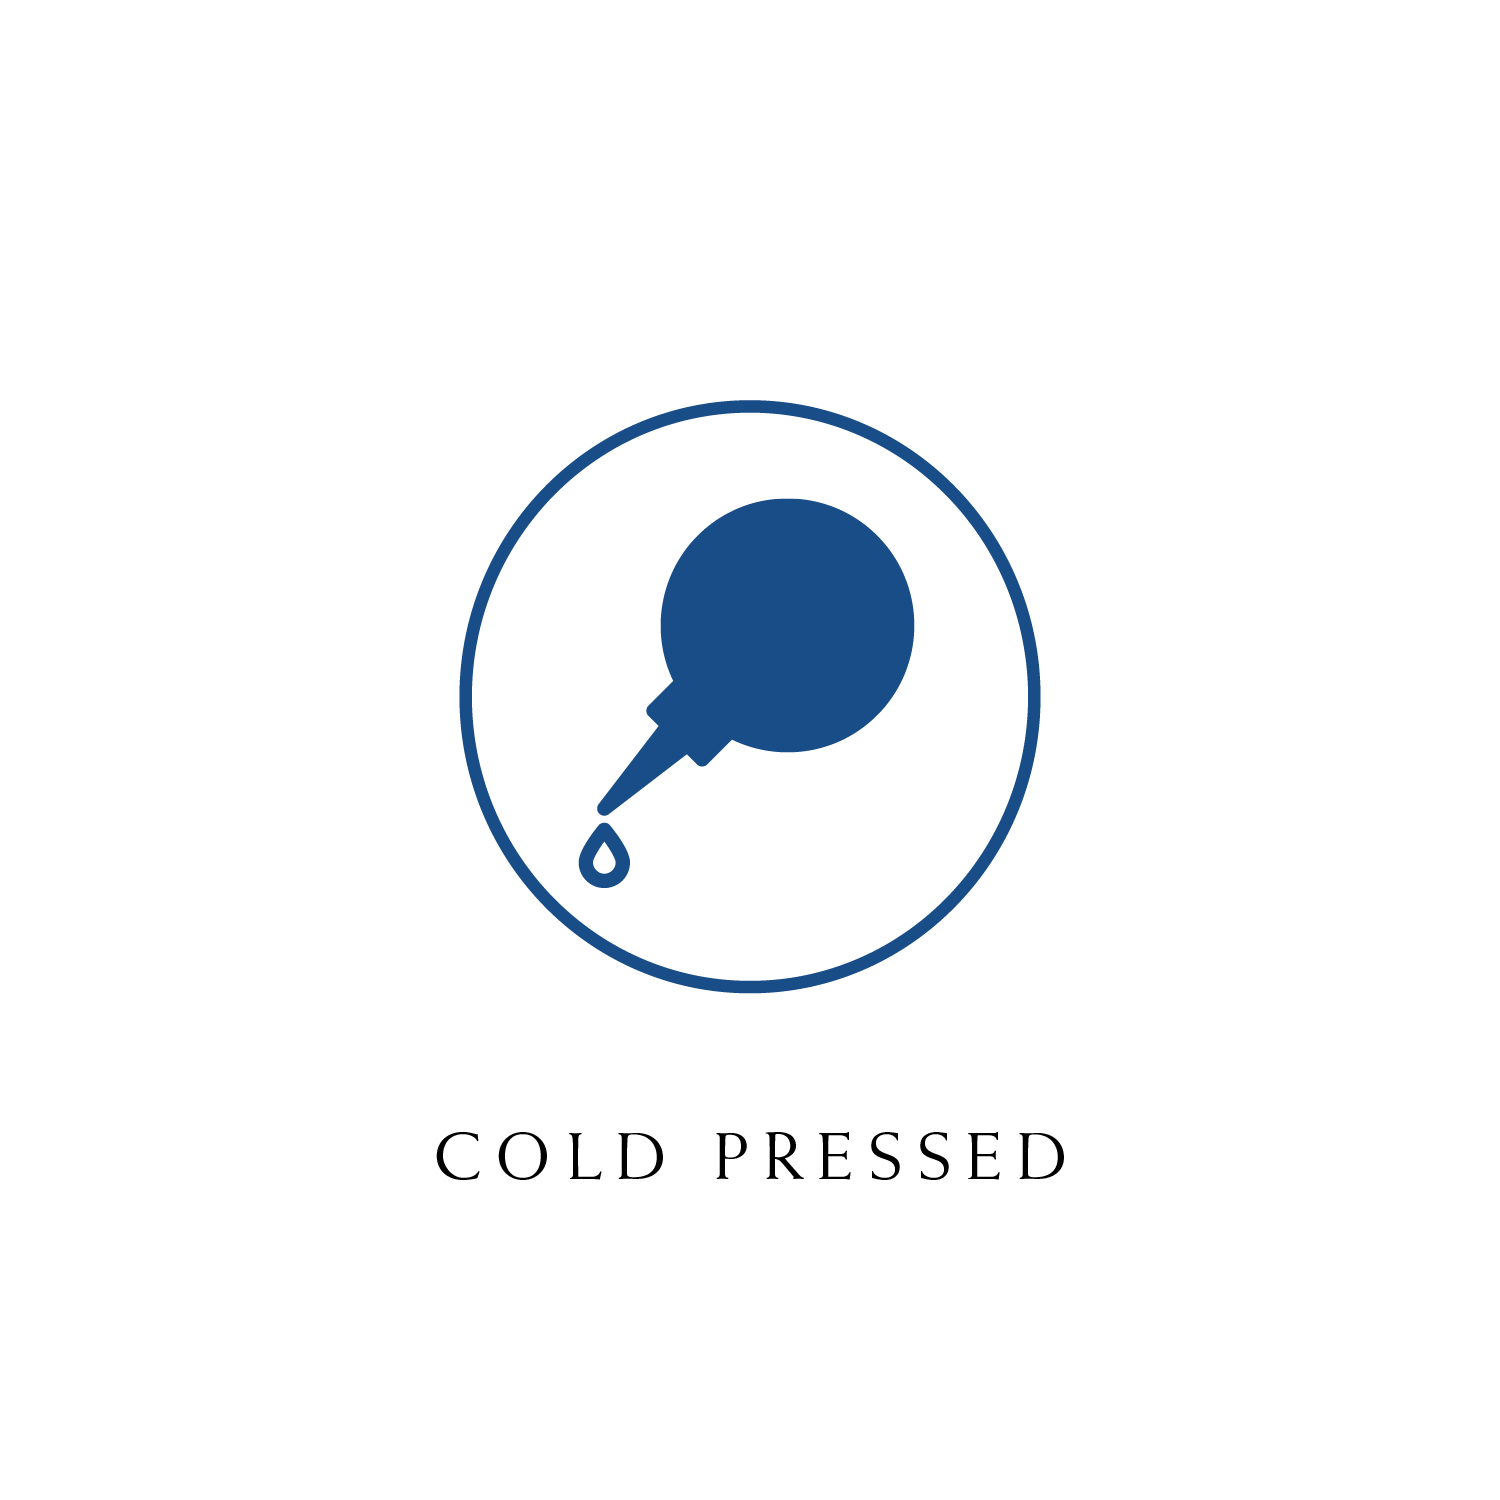 KPO-icons-KPO-ColdPressed.png